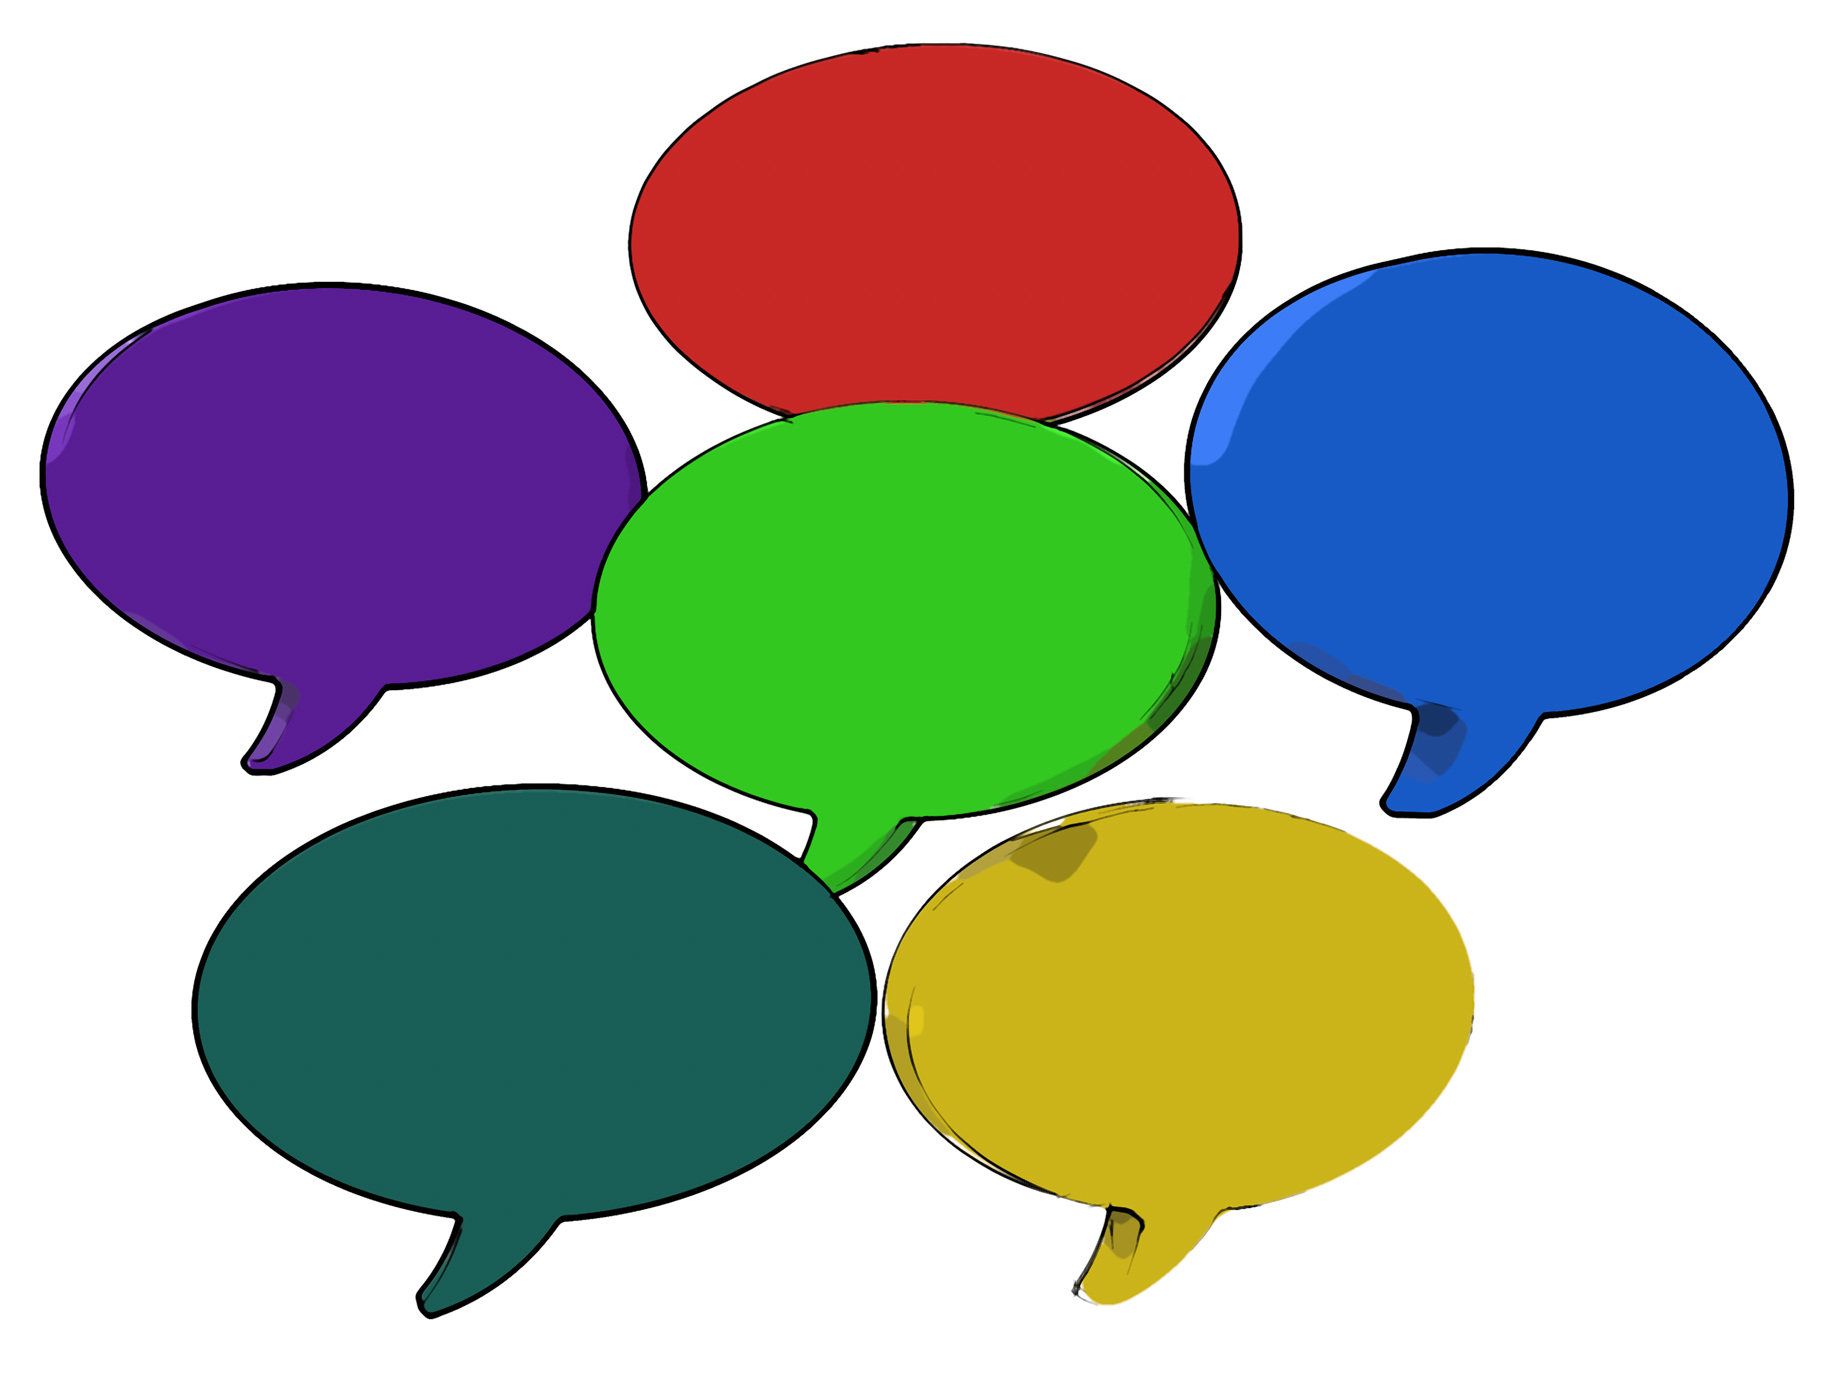 Blank speech balloon shows copy space for thought chat or idea photo